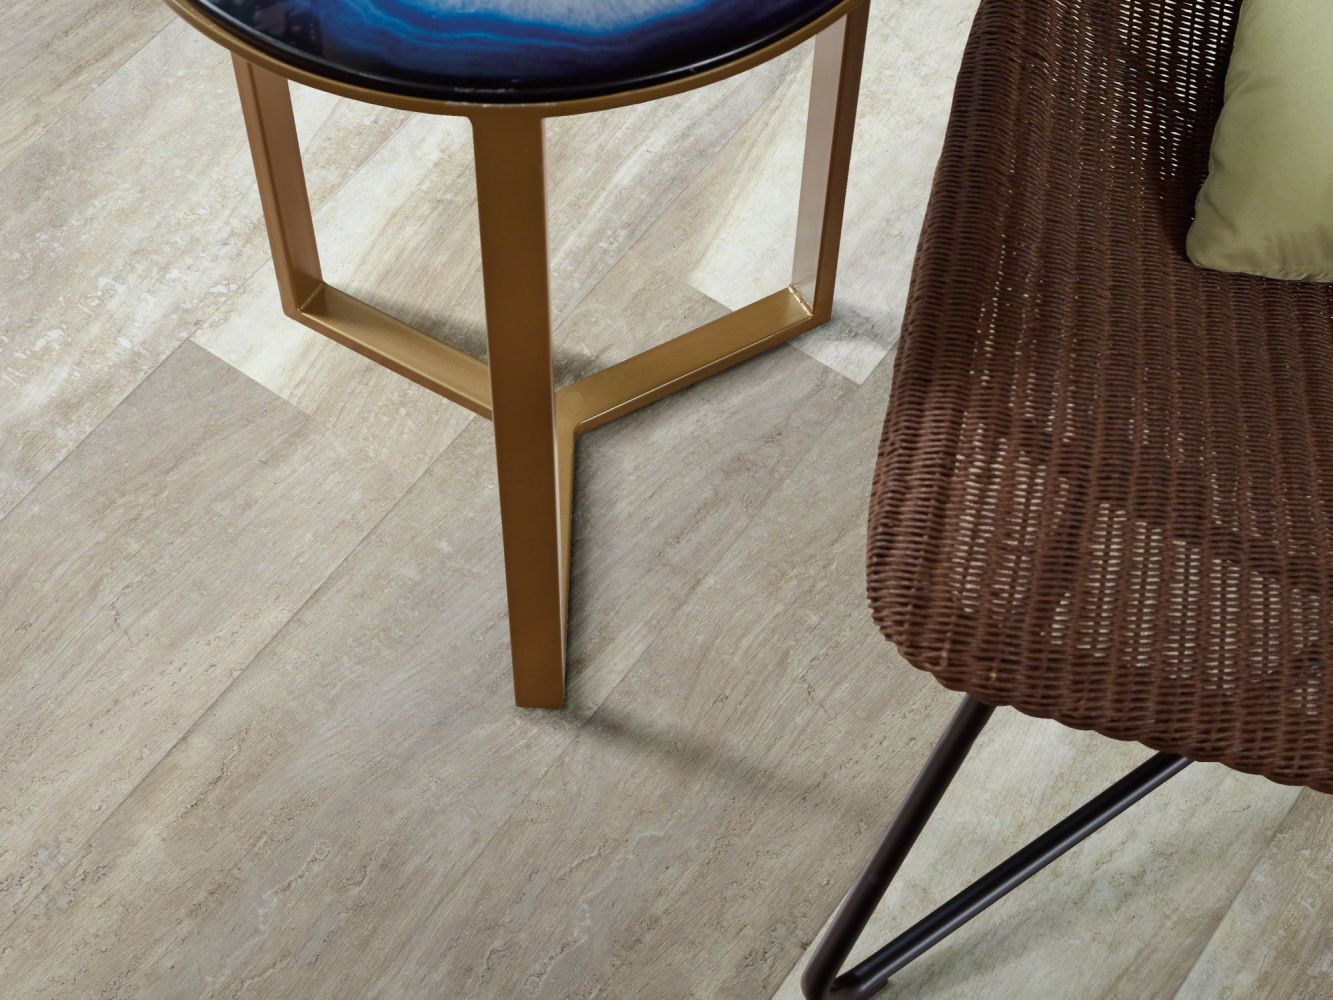 Shaw Floors Vinyl Residential Endura 512c Plus Alabaster Oak 00117_0736V